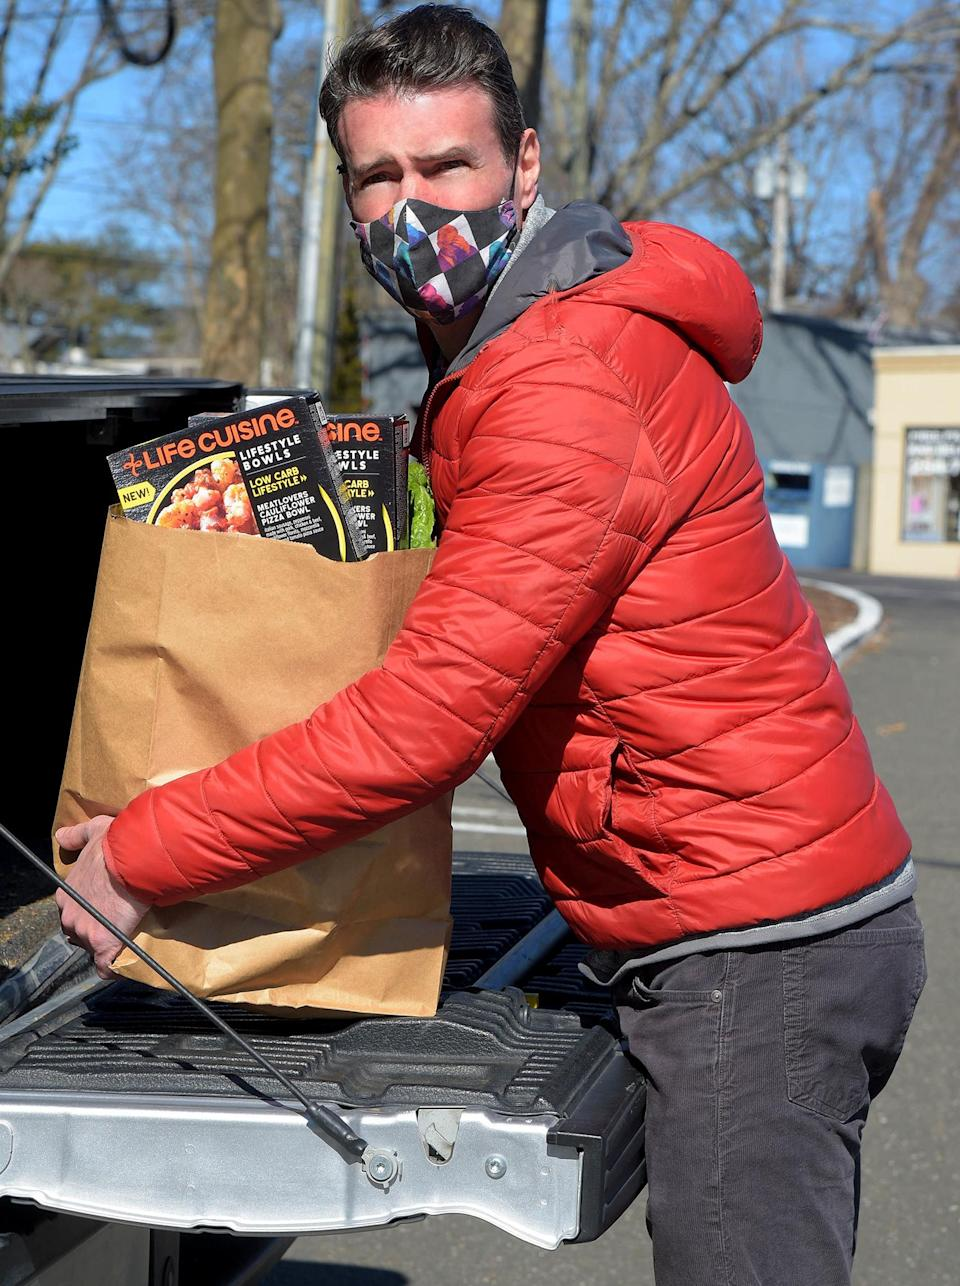 <p>Scott Foley grabs some Life Cuisine meals during a Wednesday grocery run in Connecticut. </p>